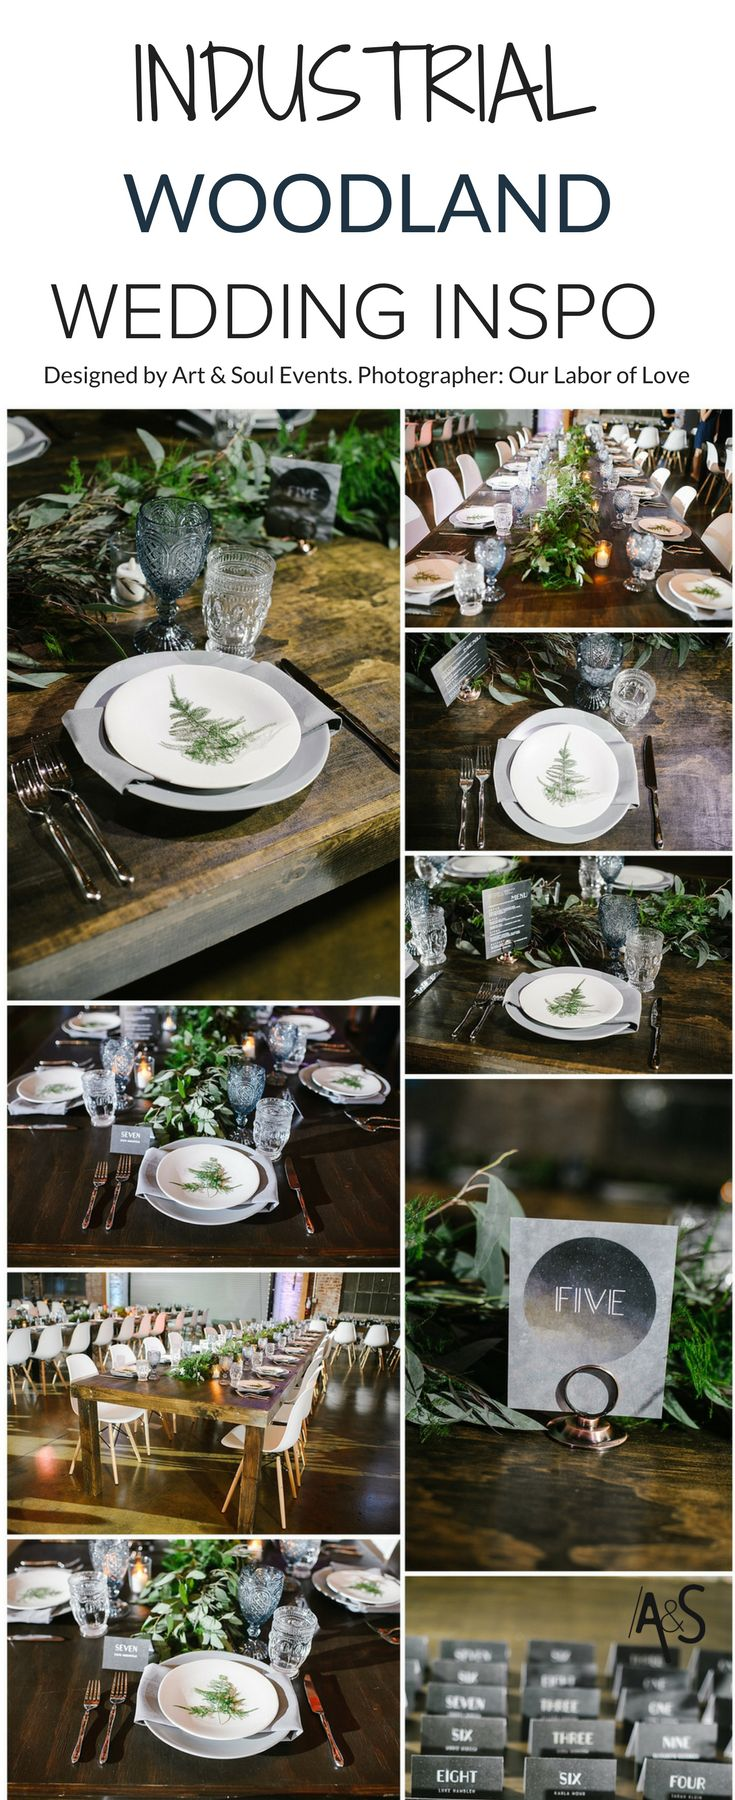 Industrial Woodland Wedding inspiration. Farm Tables, Dark Greenery Garlands, Fern Napkin Detail, White eames chairs, grey dinner plate, and smoky blue colored goblets. Midnight in the forest wedding designed by Art & Soul Events